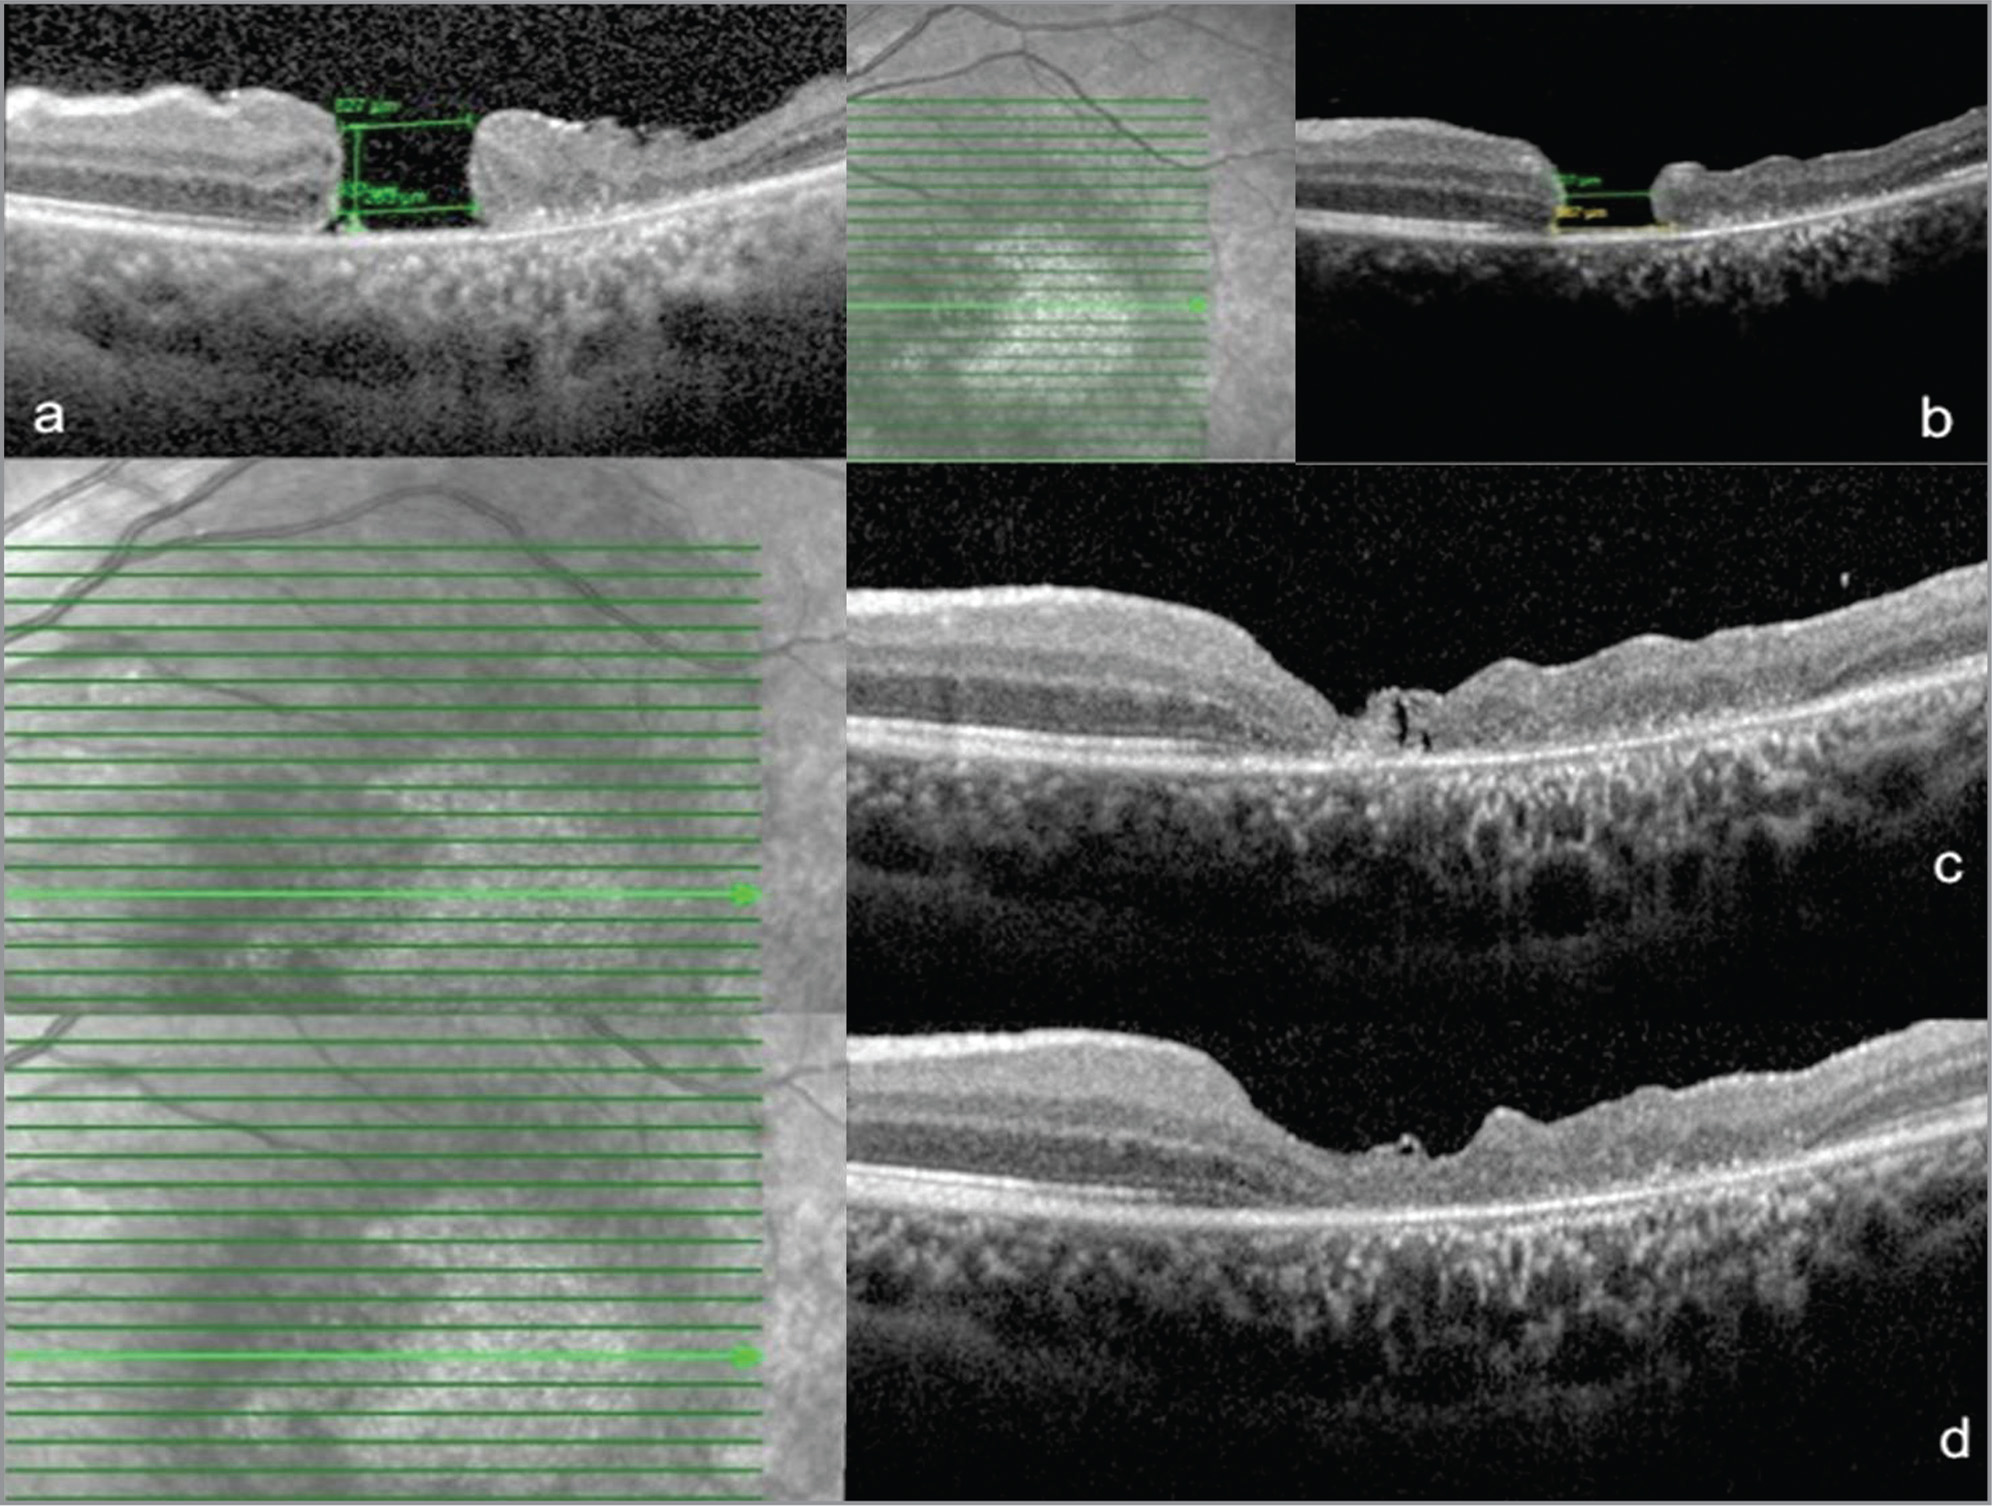 Complicated macular hole (MH) secondary to submacular hemorrhage in a 19-year-old woman with acute myeloid leukemia (Case 2). Patient could only be operated on 2 years after presentation because of thrombocytopenia and general health issues pertaining to her systemic illness. (A) At presentation: Optical coherence tomography (OCT) showed atrophic edges of MH without any cystoid changes and atrophic temporal outer retinal layers. (B) After primary surgery: OCT showed persistent MH. (C) After free flap surgery (immediate post op): OCT showed closed MH with internal limiting membrane graft. (D) Four months later: OCT showed MH closure with atrophic outer retinal layers. Final best-corrected visual acuity (BCVA) improved to 1.17 logMAR (Snellen 20/320) from her presenting BCVA of 1.8 logMAR (Snellen 20/1,200).